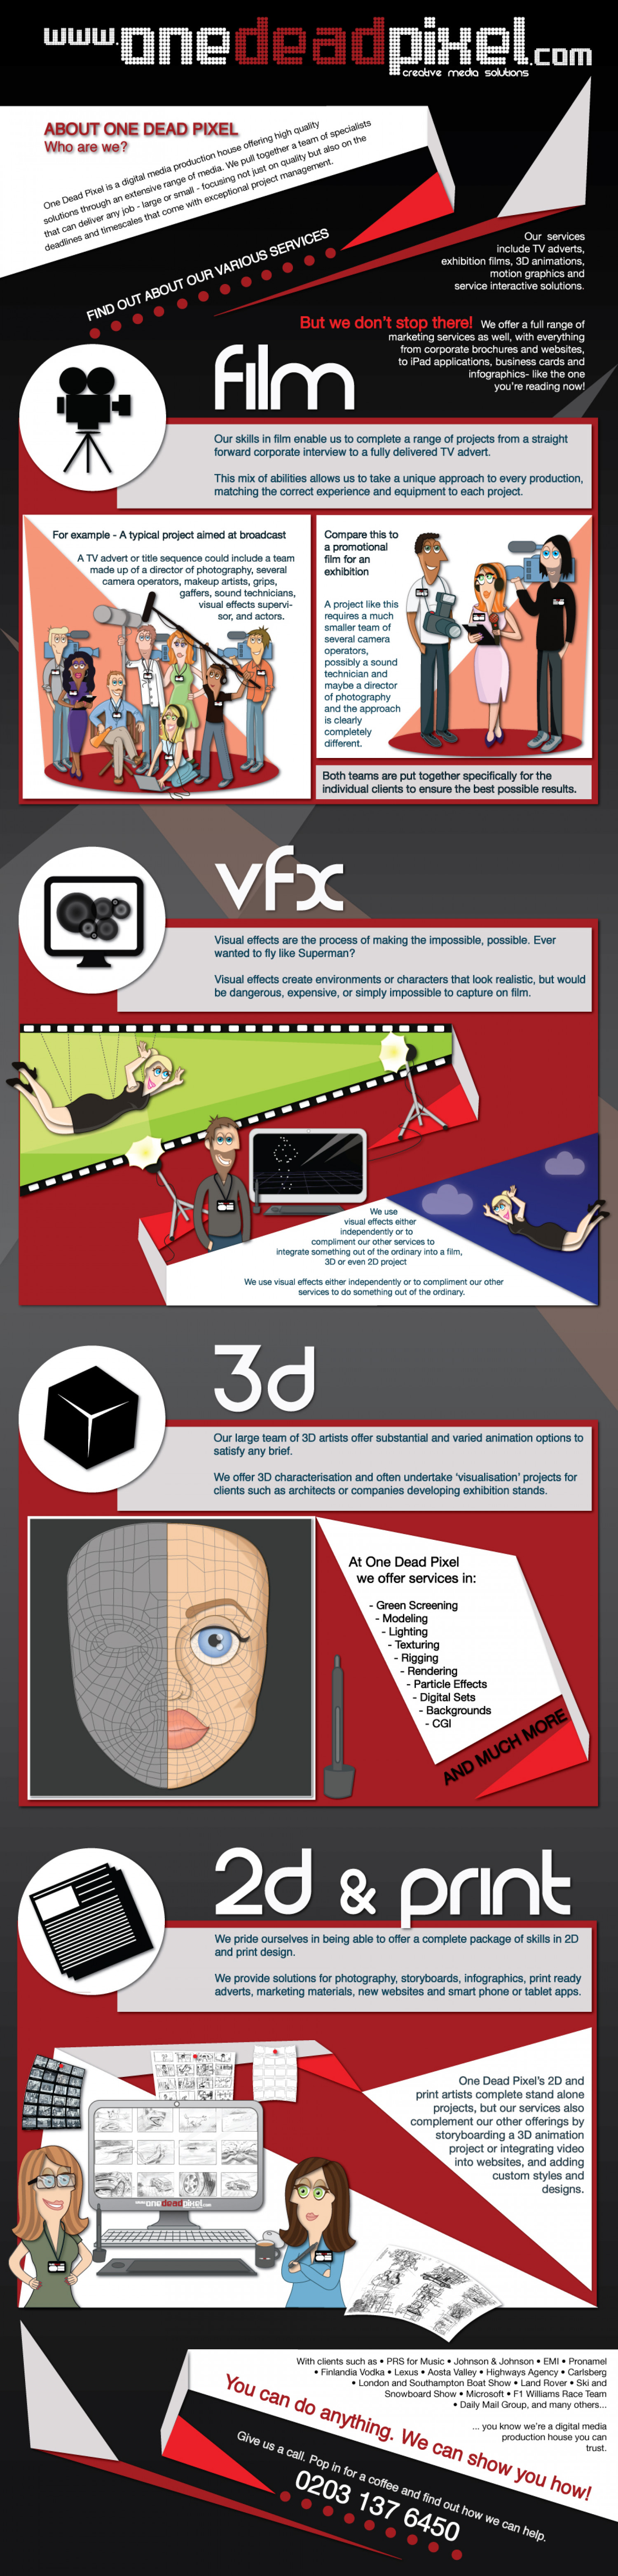 About One Dead PIxel Infographic